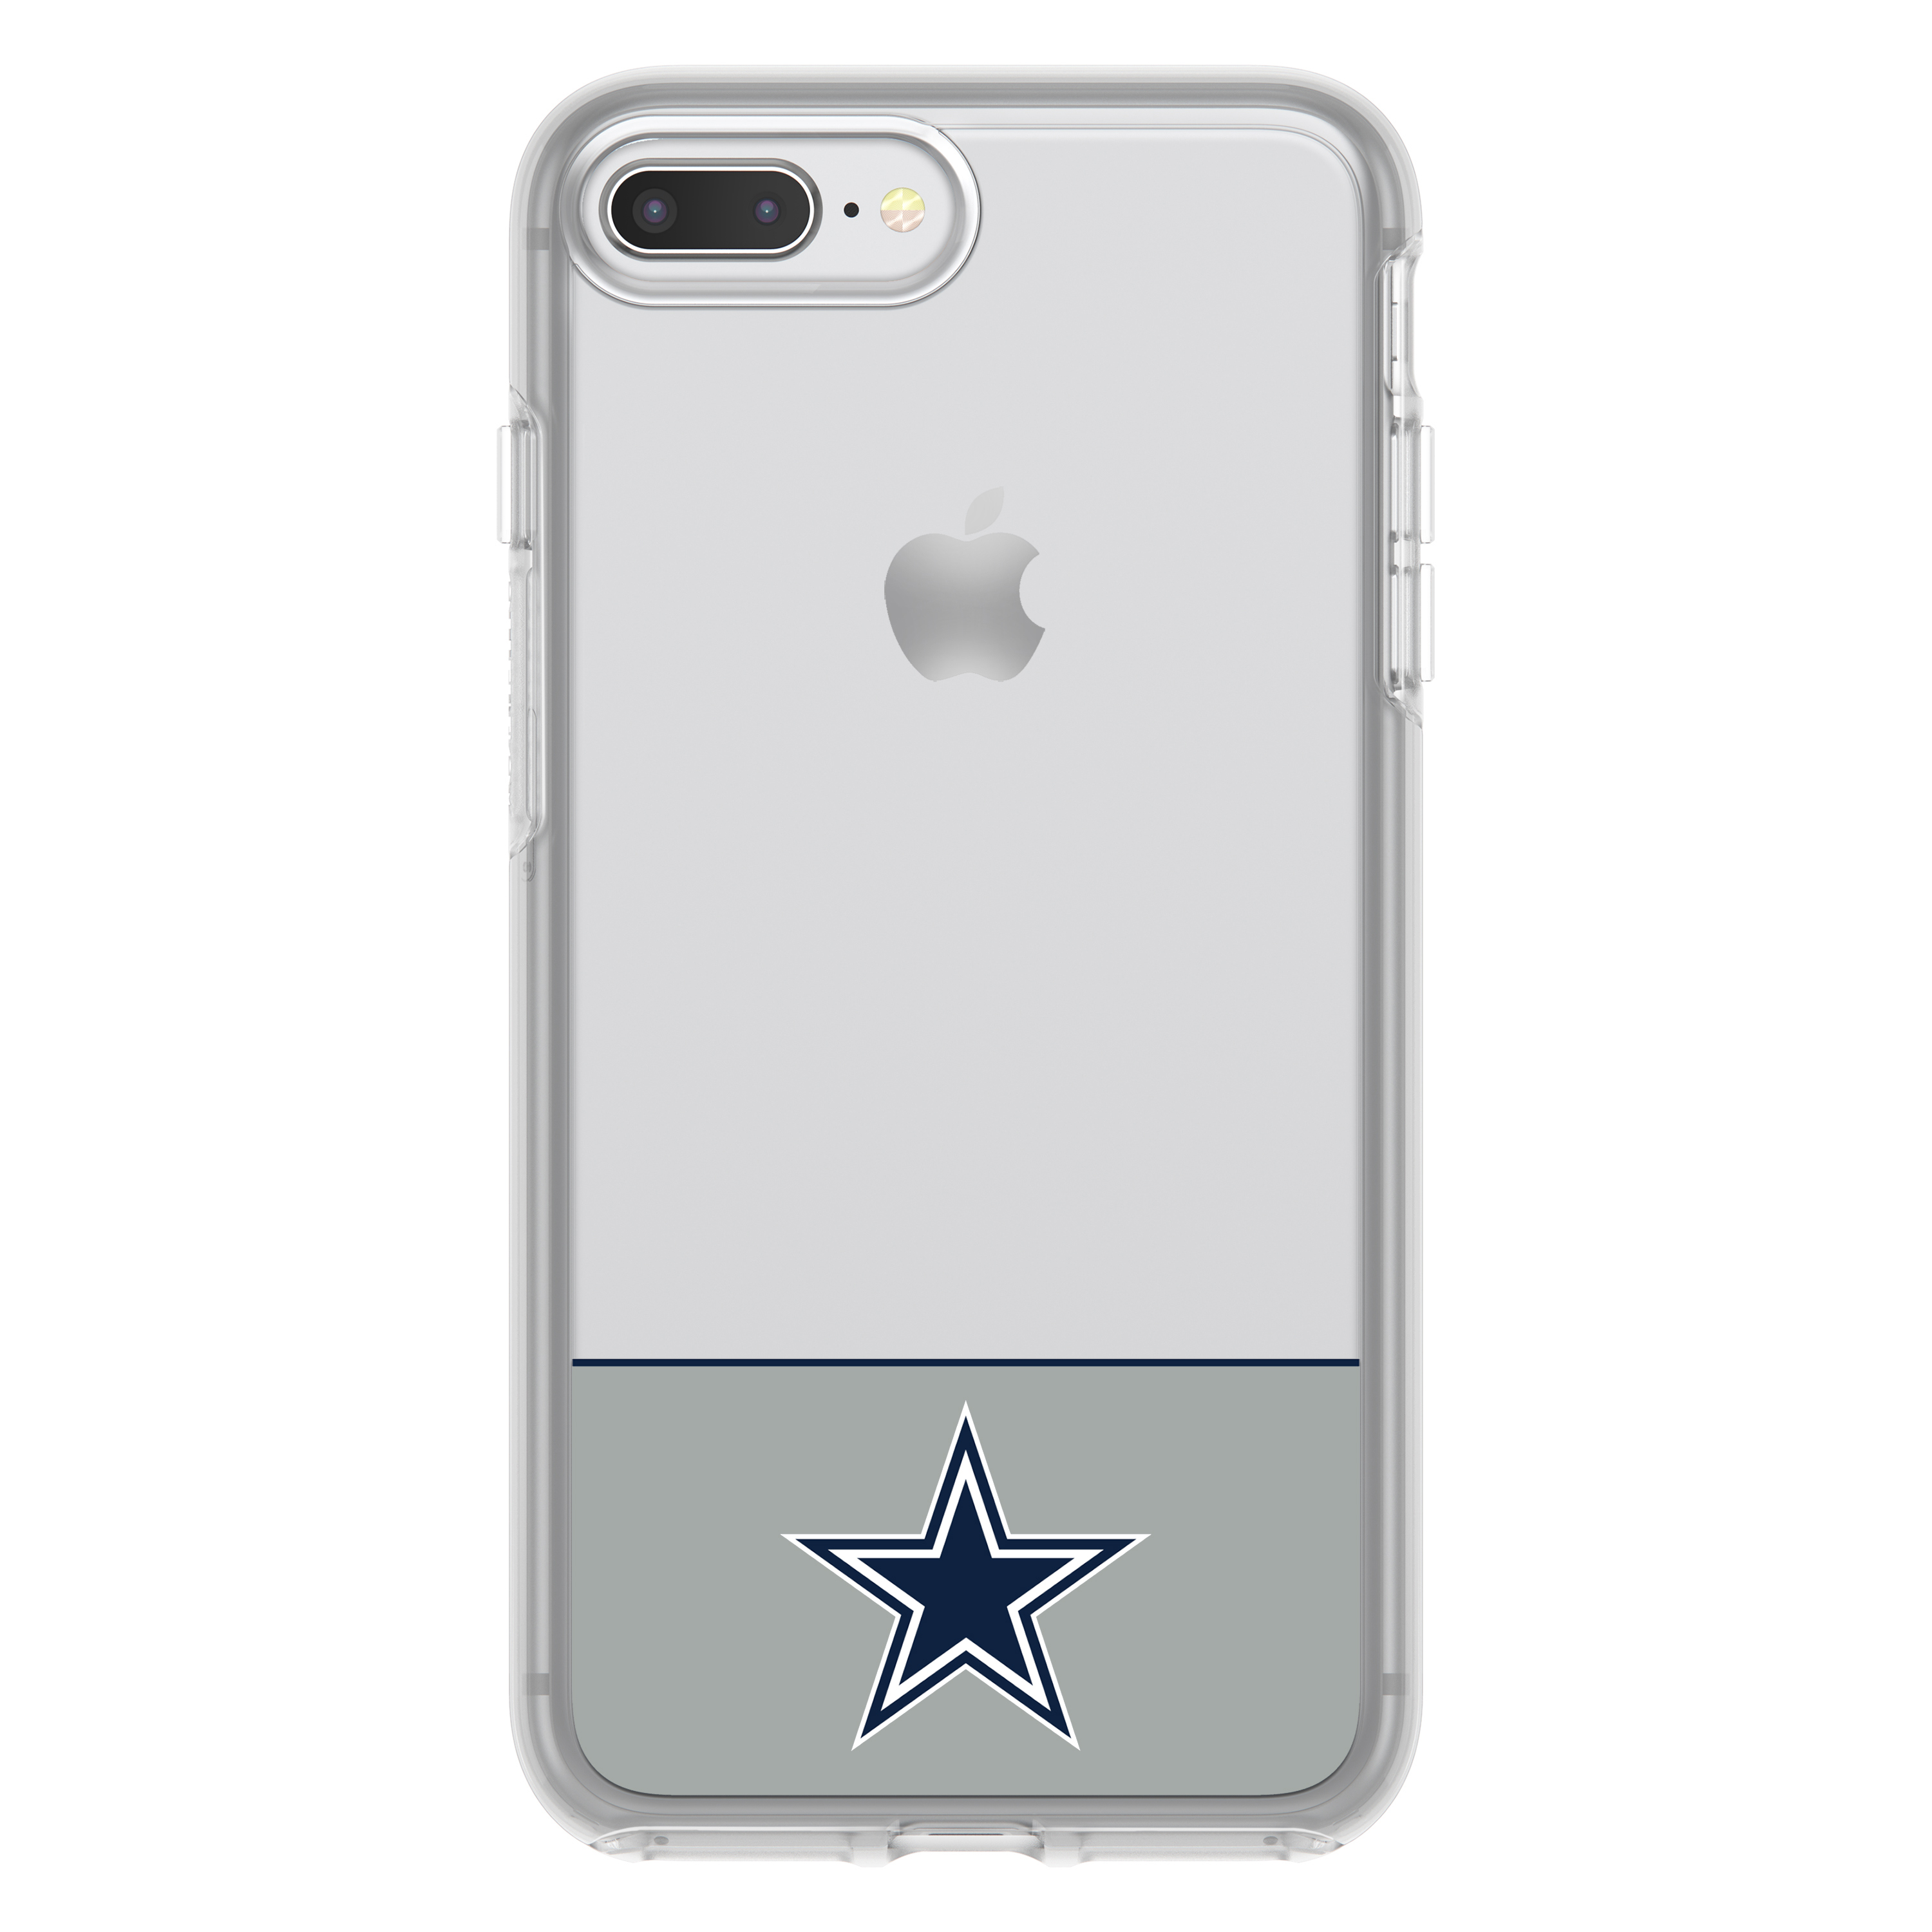 huge discount ede41 1be93 OtterBox NFL Symmetry Clear Series Case For iPhone 8 Plus / 7 Plus, NFL  Cowboys